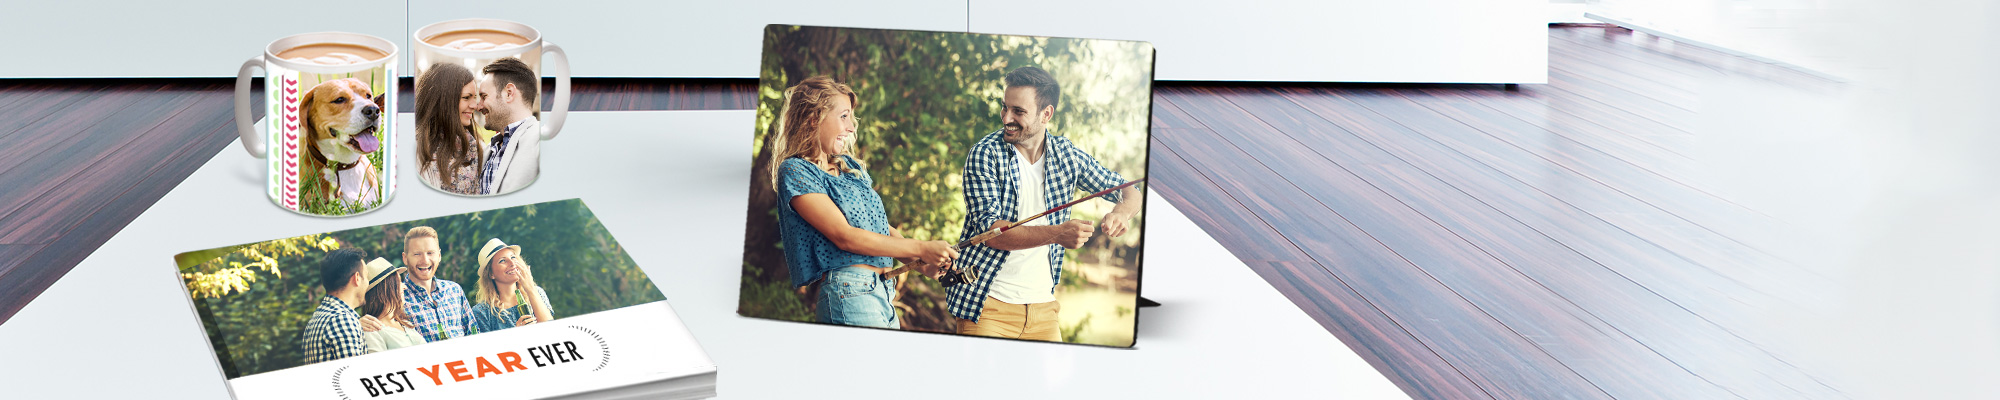 Personalised Gifts : For a quick gift using one photo, or a Photo Book with hundreds, you're at the right place!